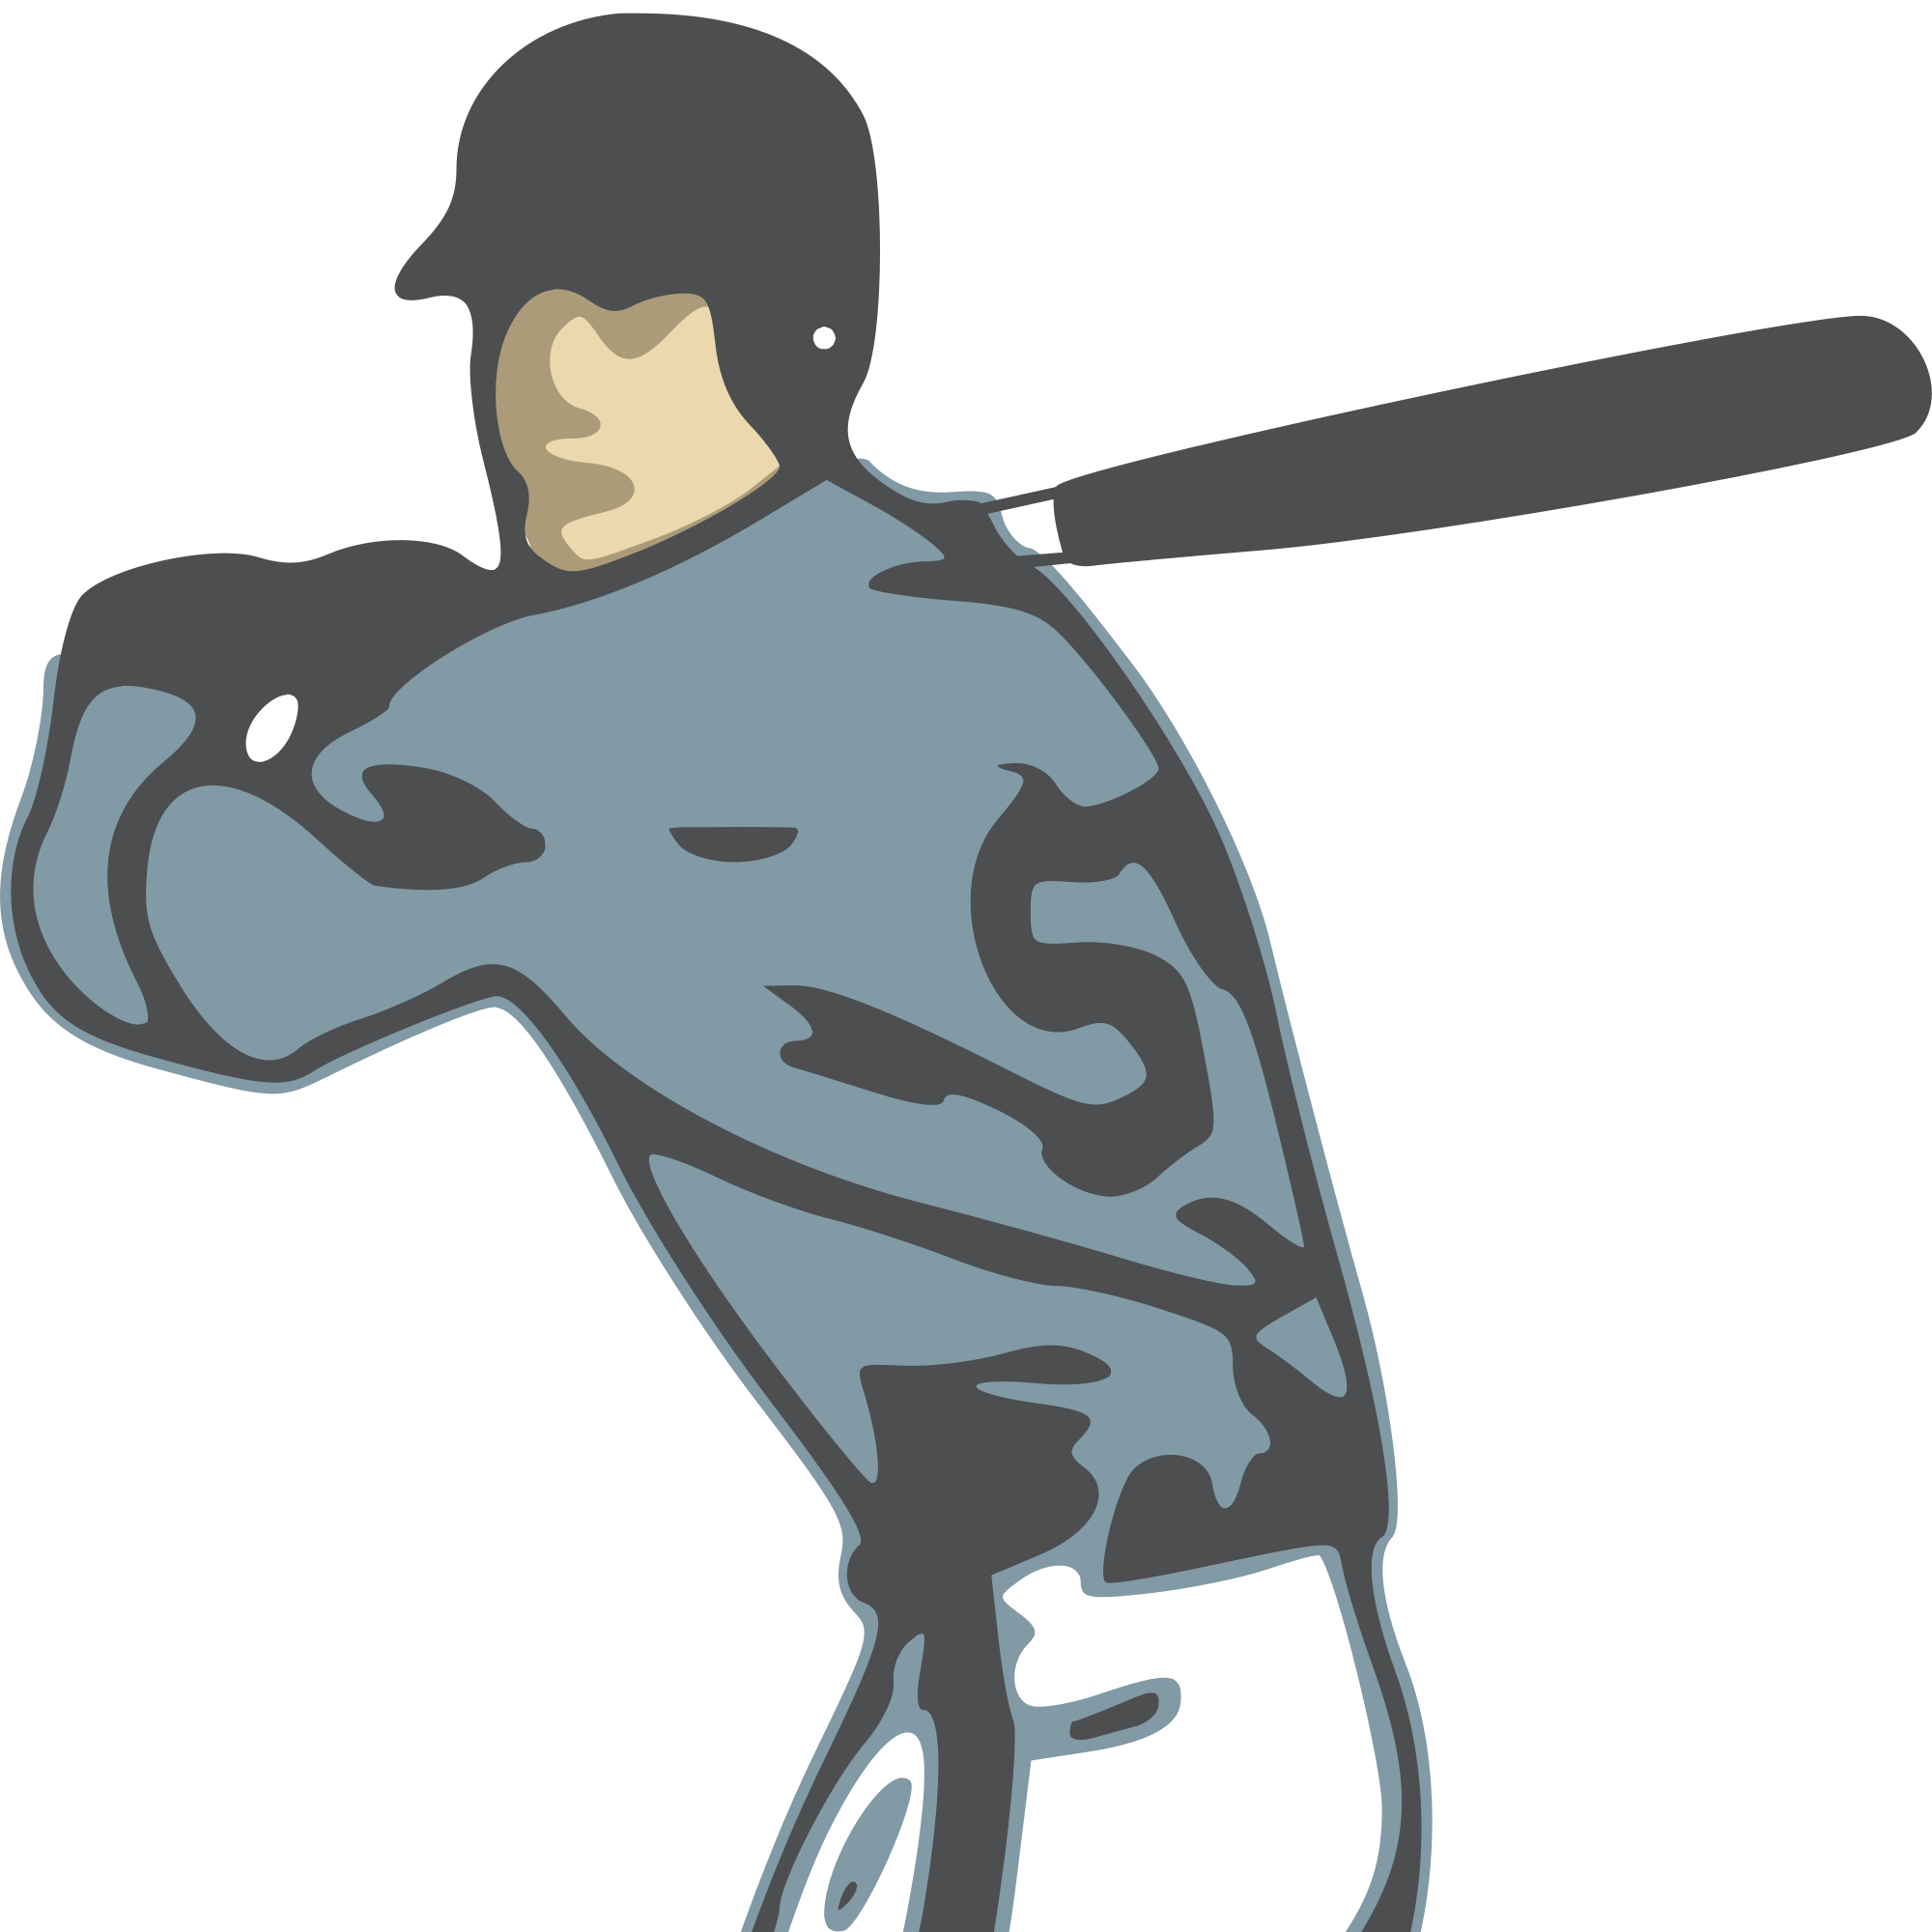 Free baseball graphics clipart banner black and white download Baseball Batter Clipart at GetDrawings.com | Free for personal use ... banner black and white download